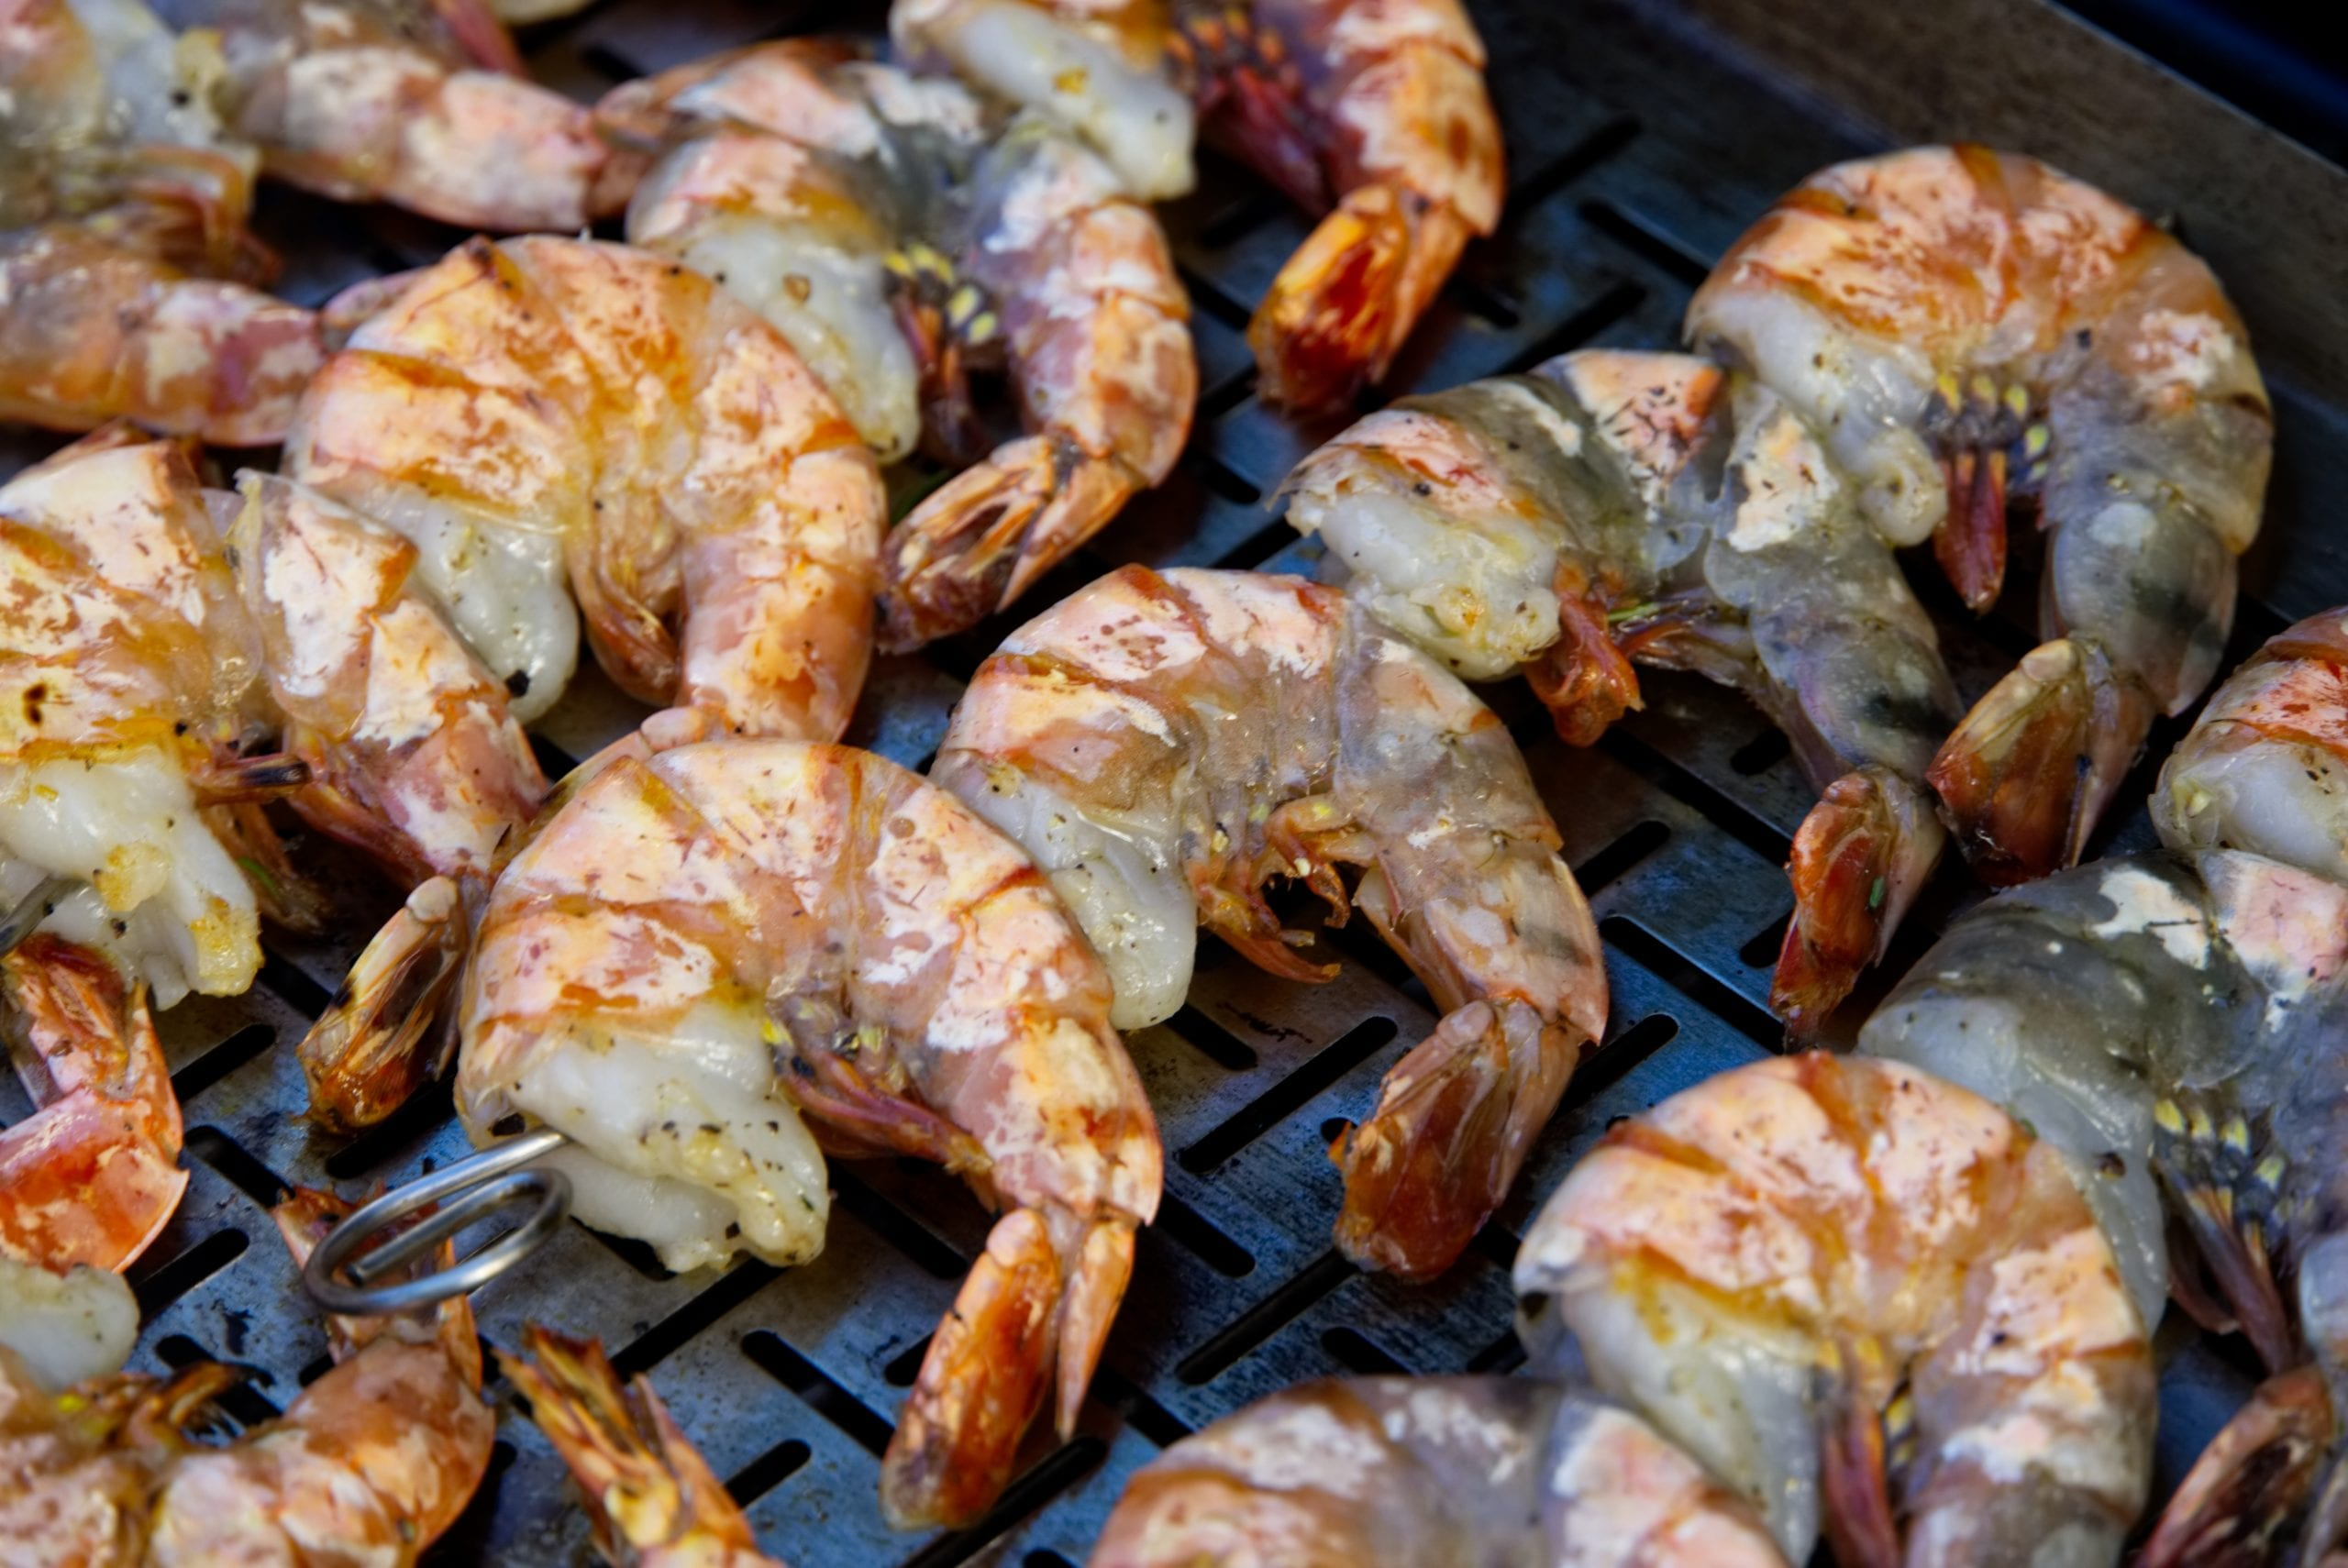 shrimp-grill-spit-stockpack-pixabay.jpg